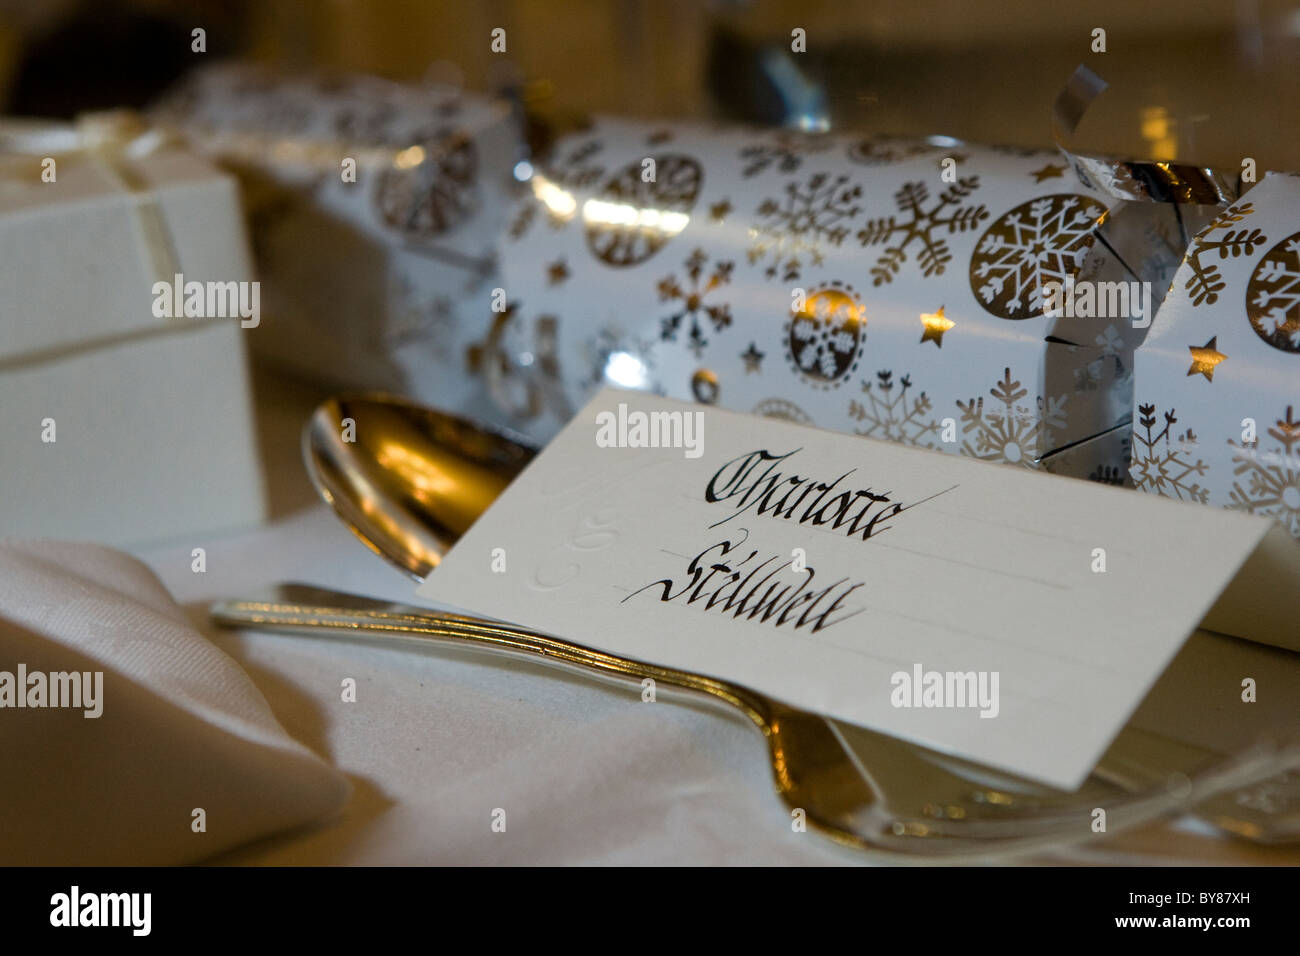 Calligraphy, cracker and cutlery - Stock Image